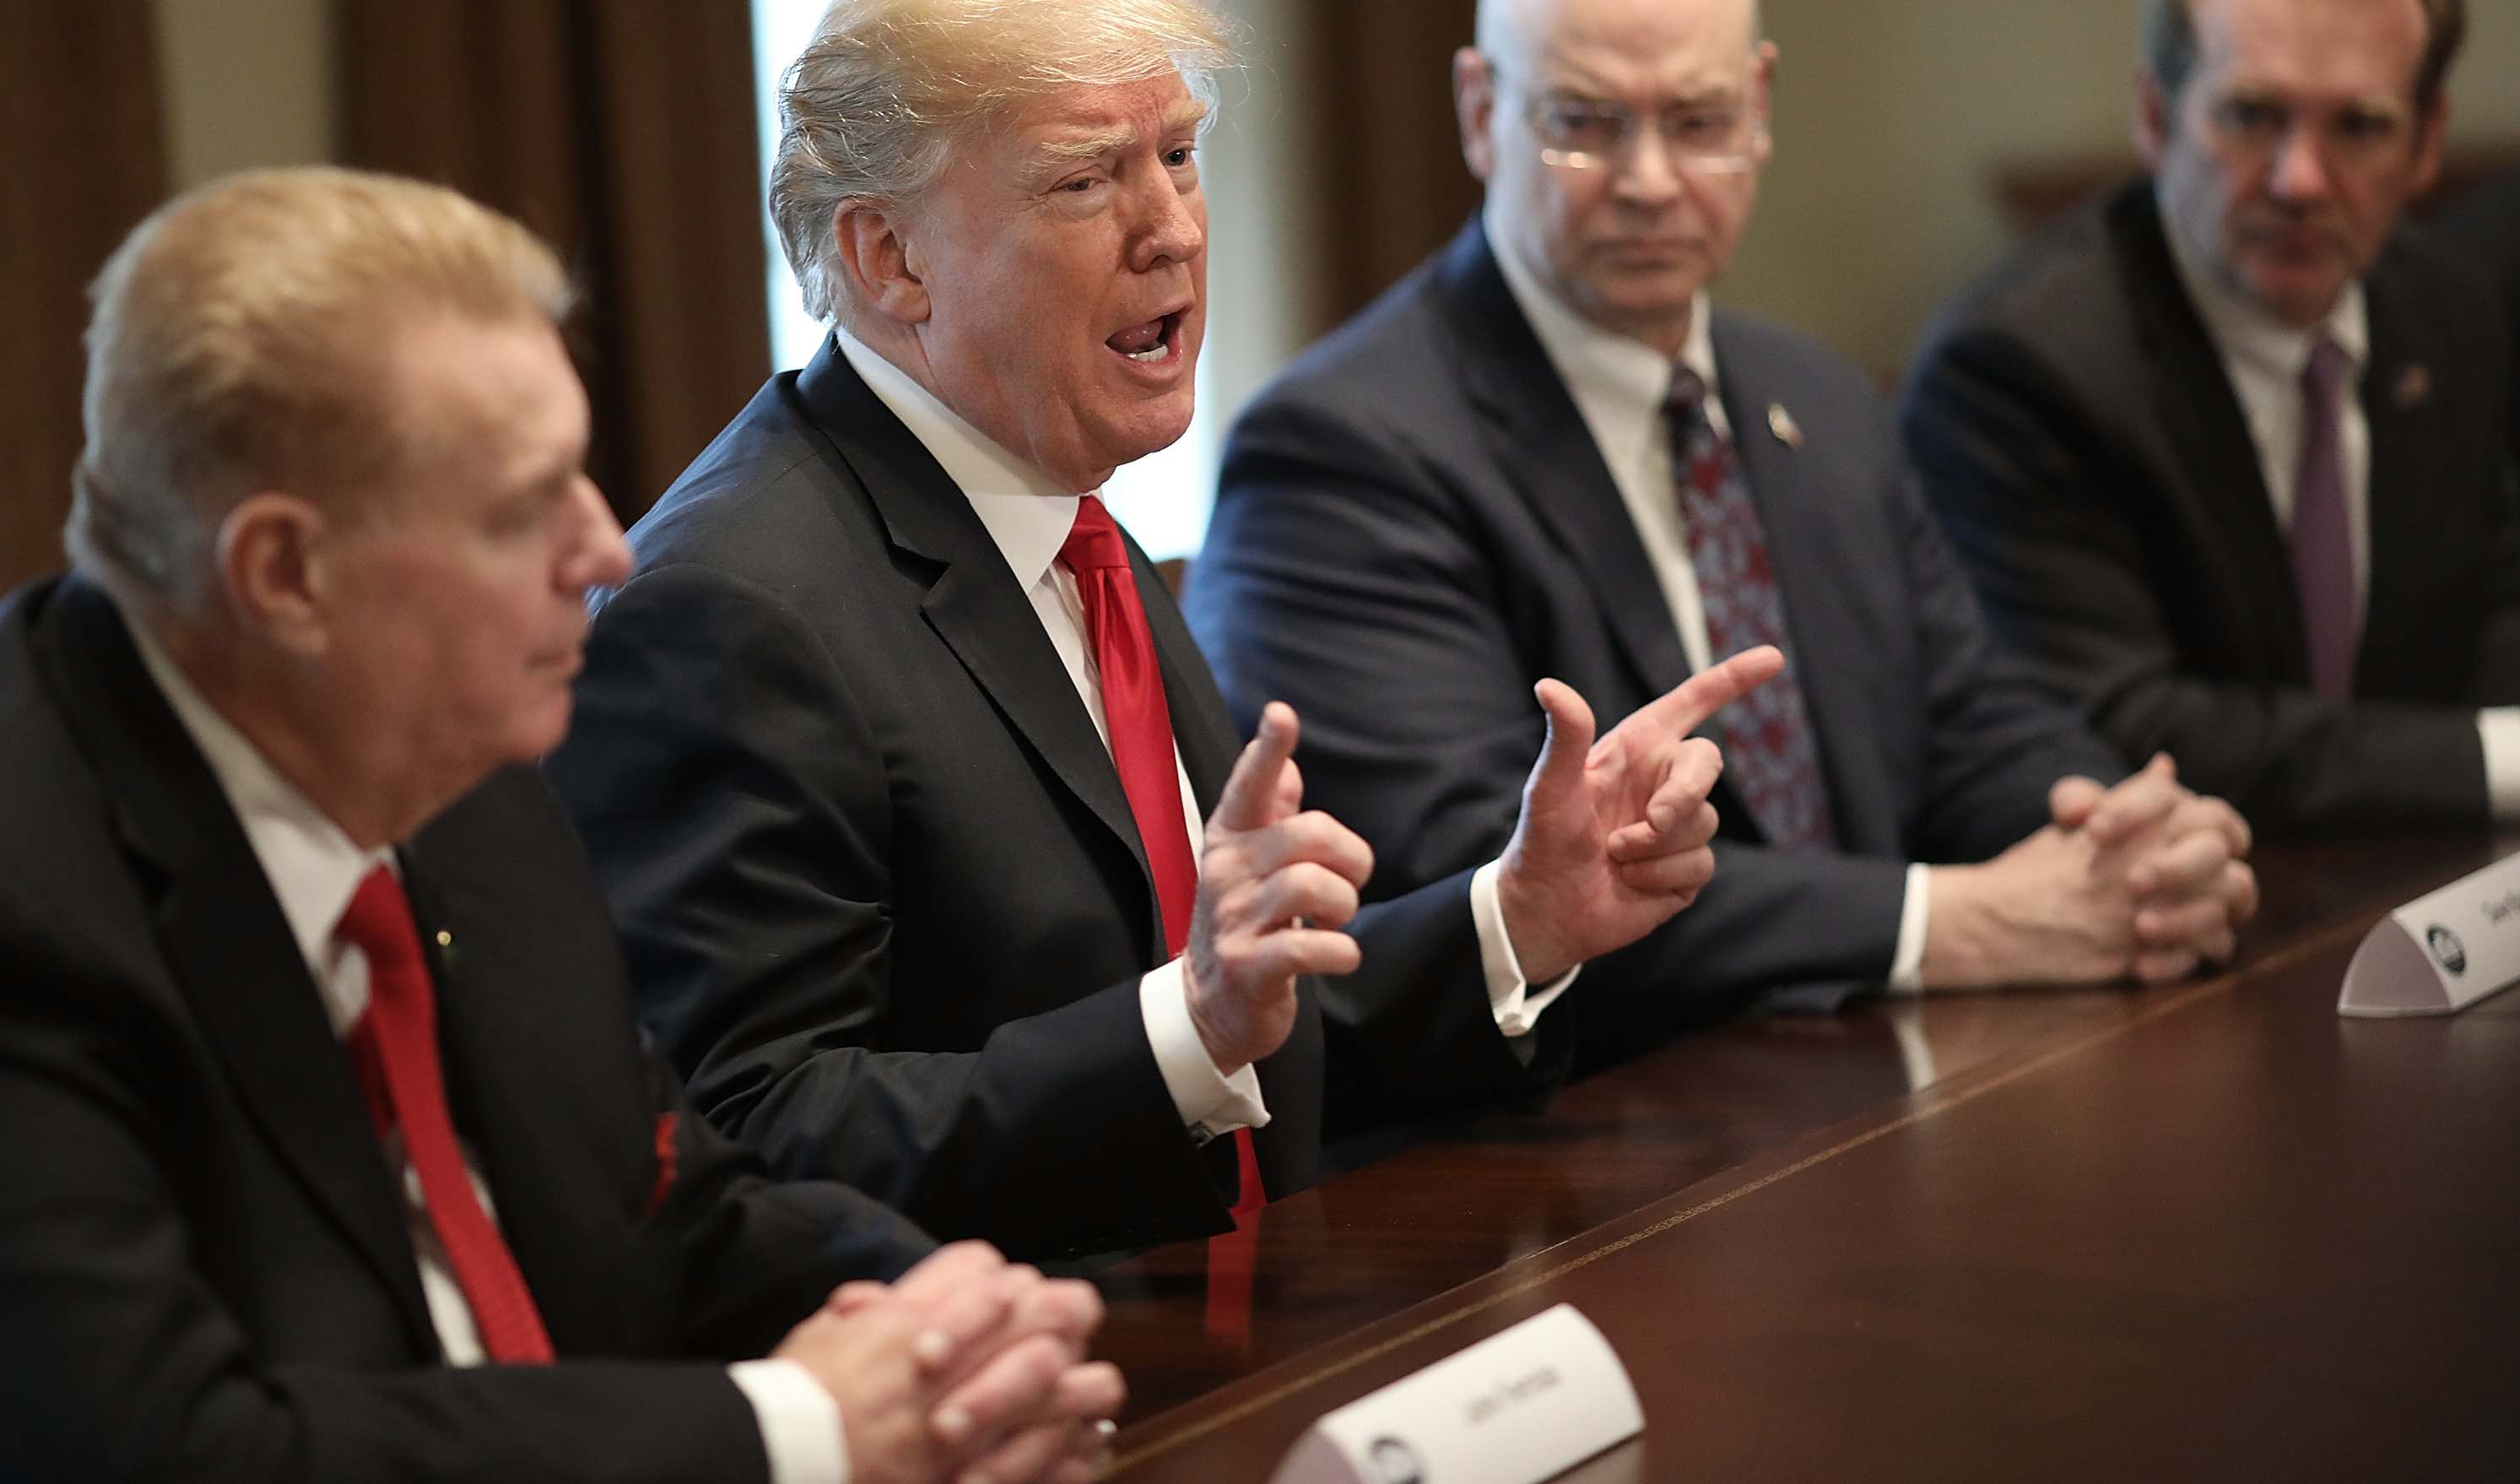 Donald Trump announces planned tariffs on imported steel and aluminium in a meeting with industry chiefs (Photo: Win McNamee/Getty)